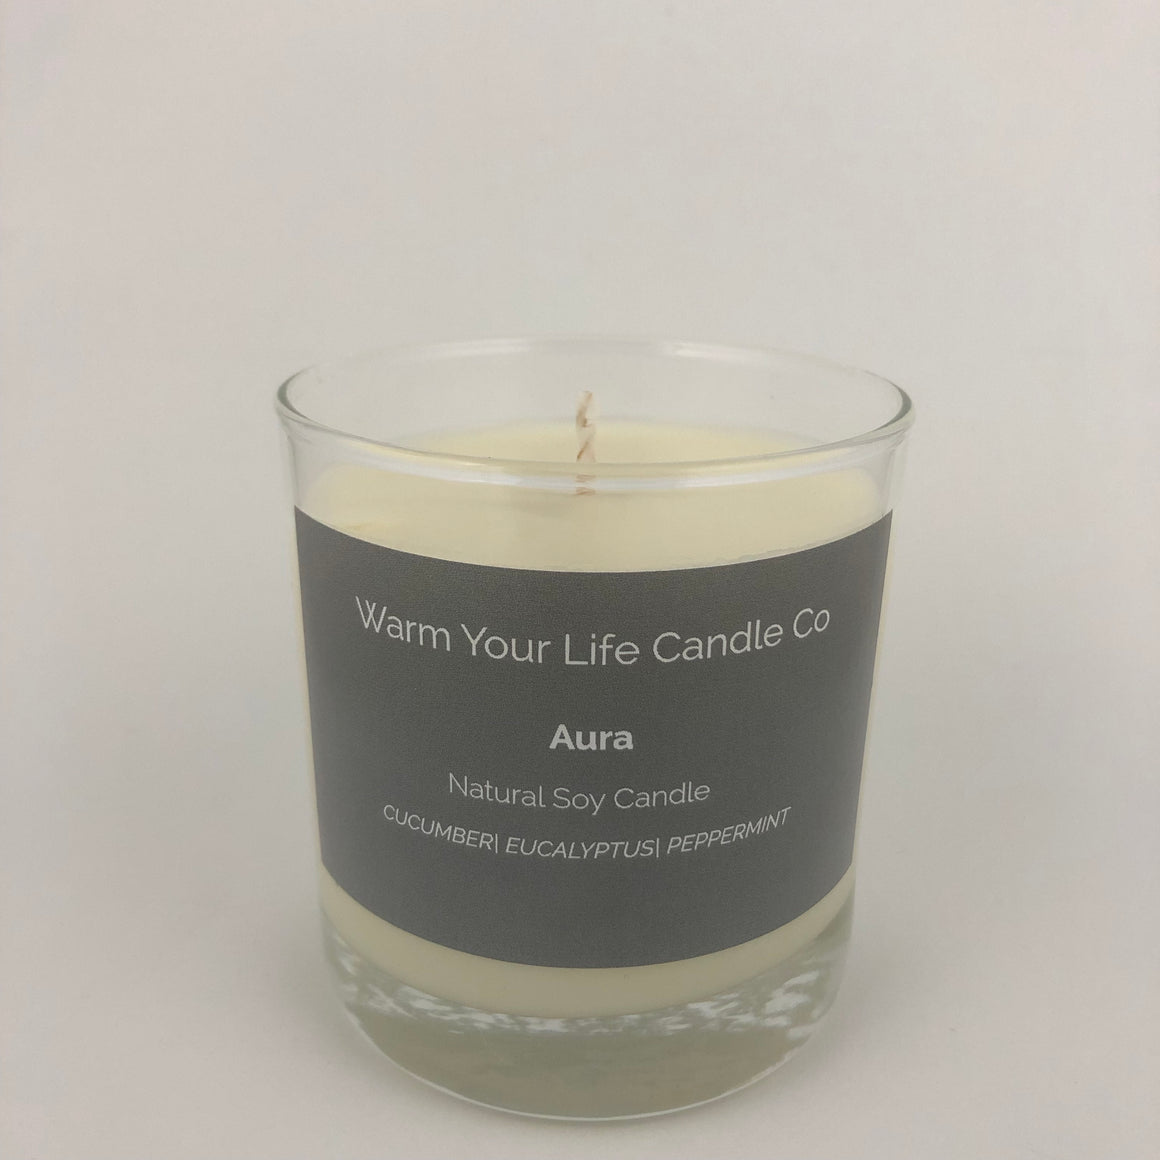 Aura Soy Candle